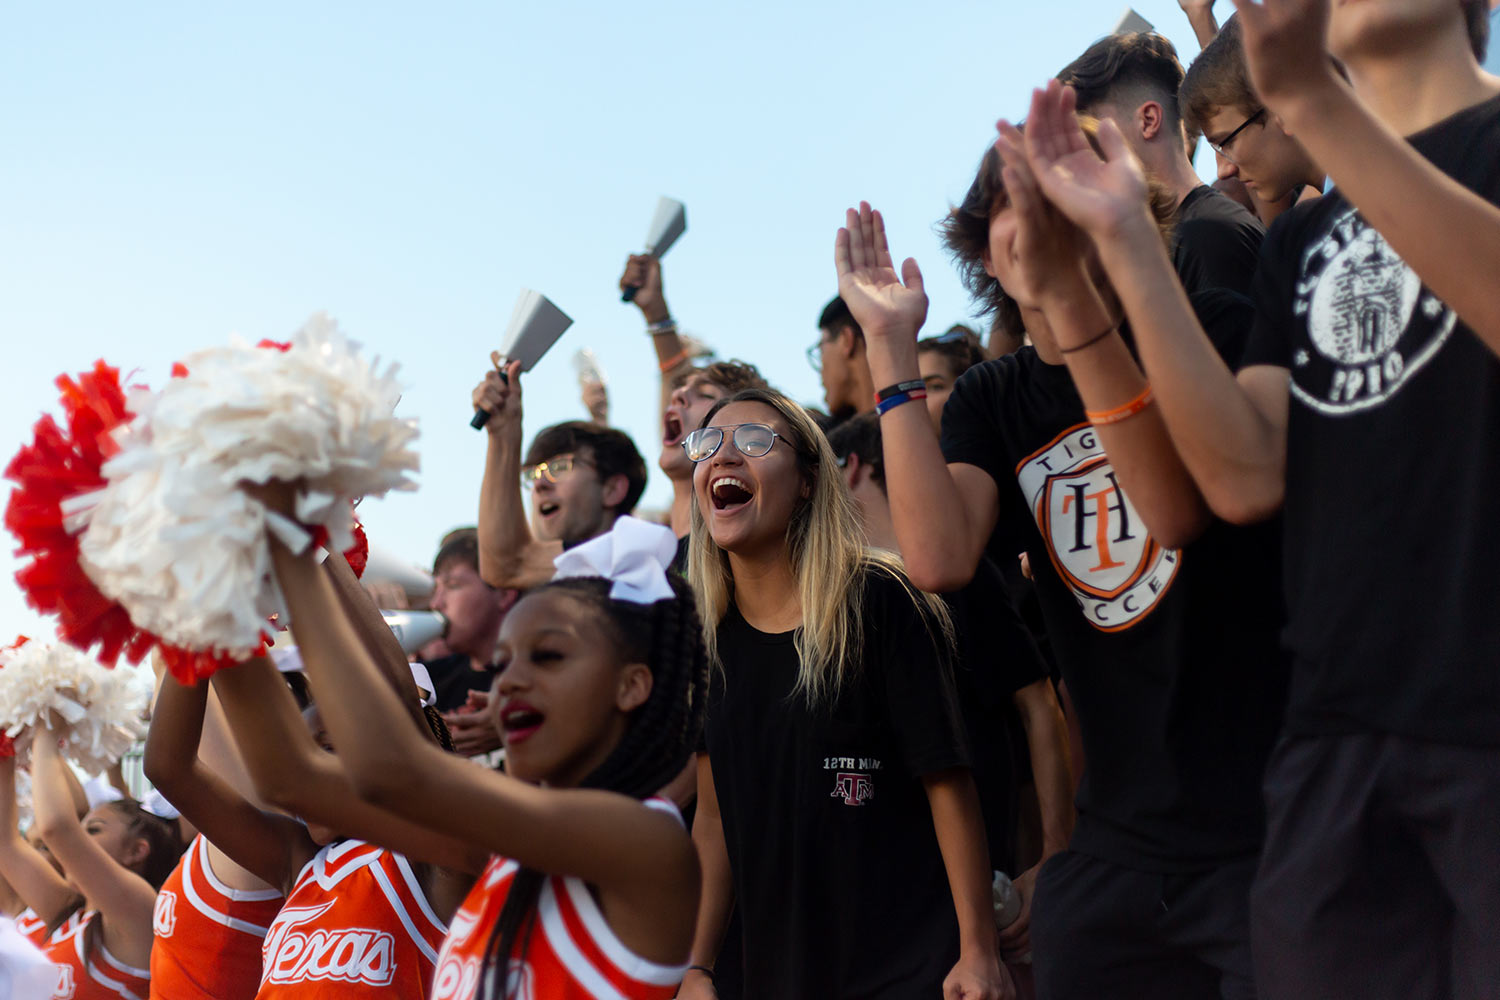 Senior Mya Bowers cheers for the Texas High Tigers as they play against Liberty Eylau. This was the first home game of the season for Texas High.